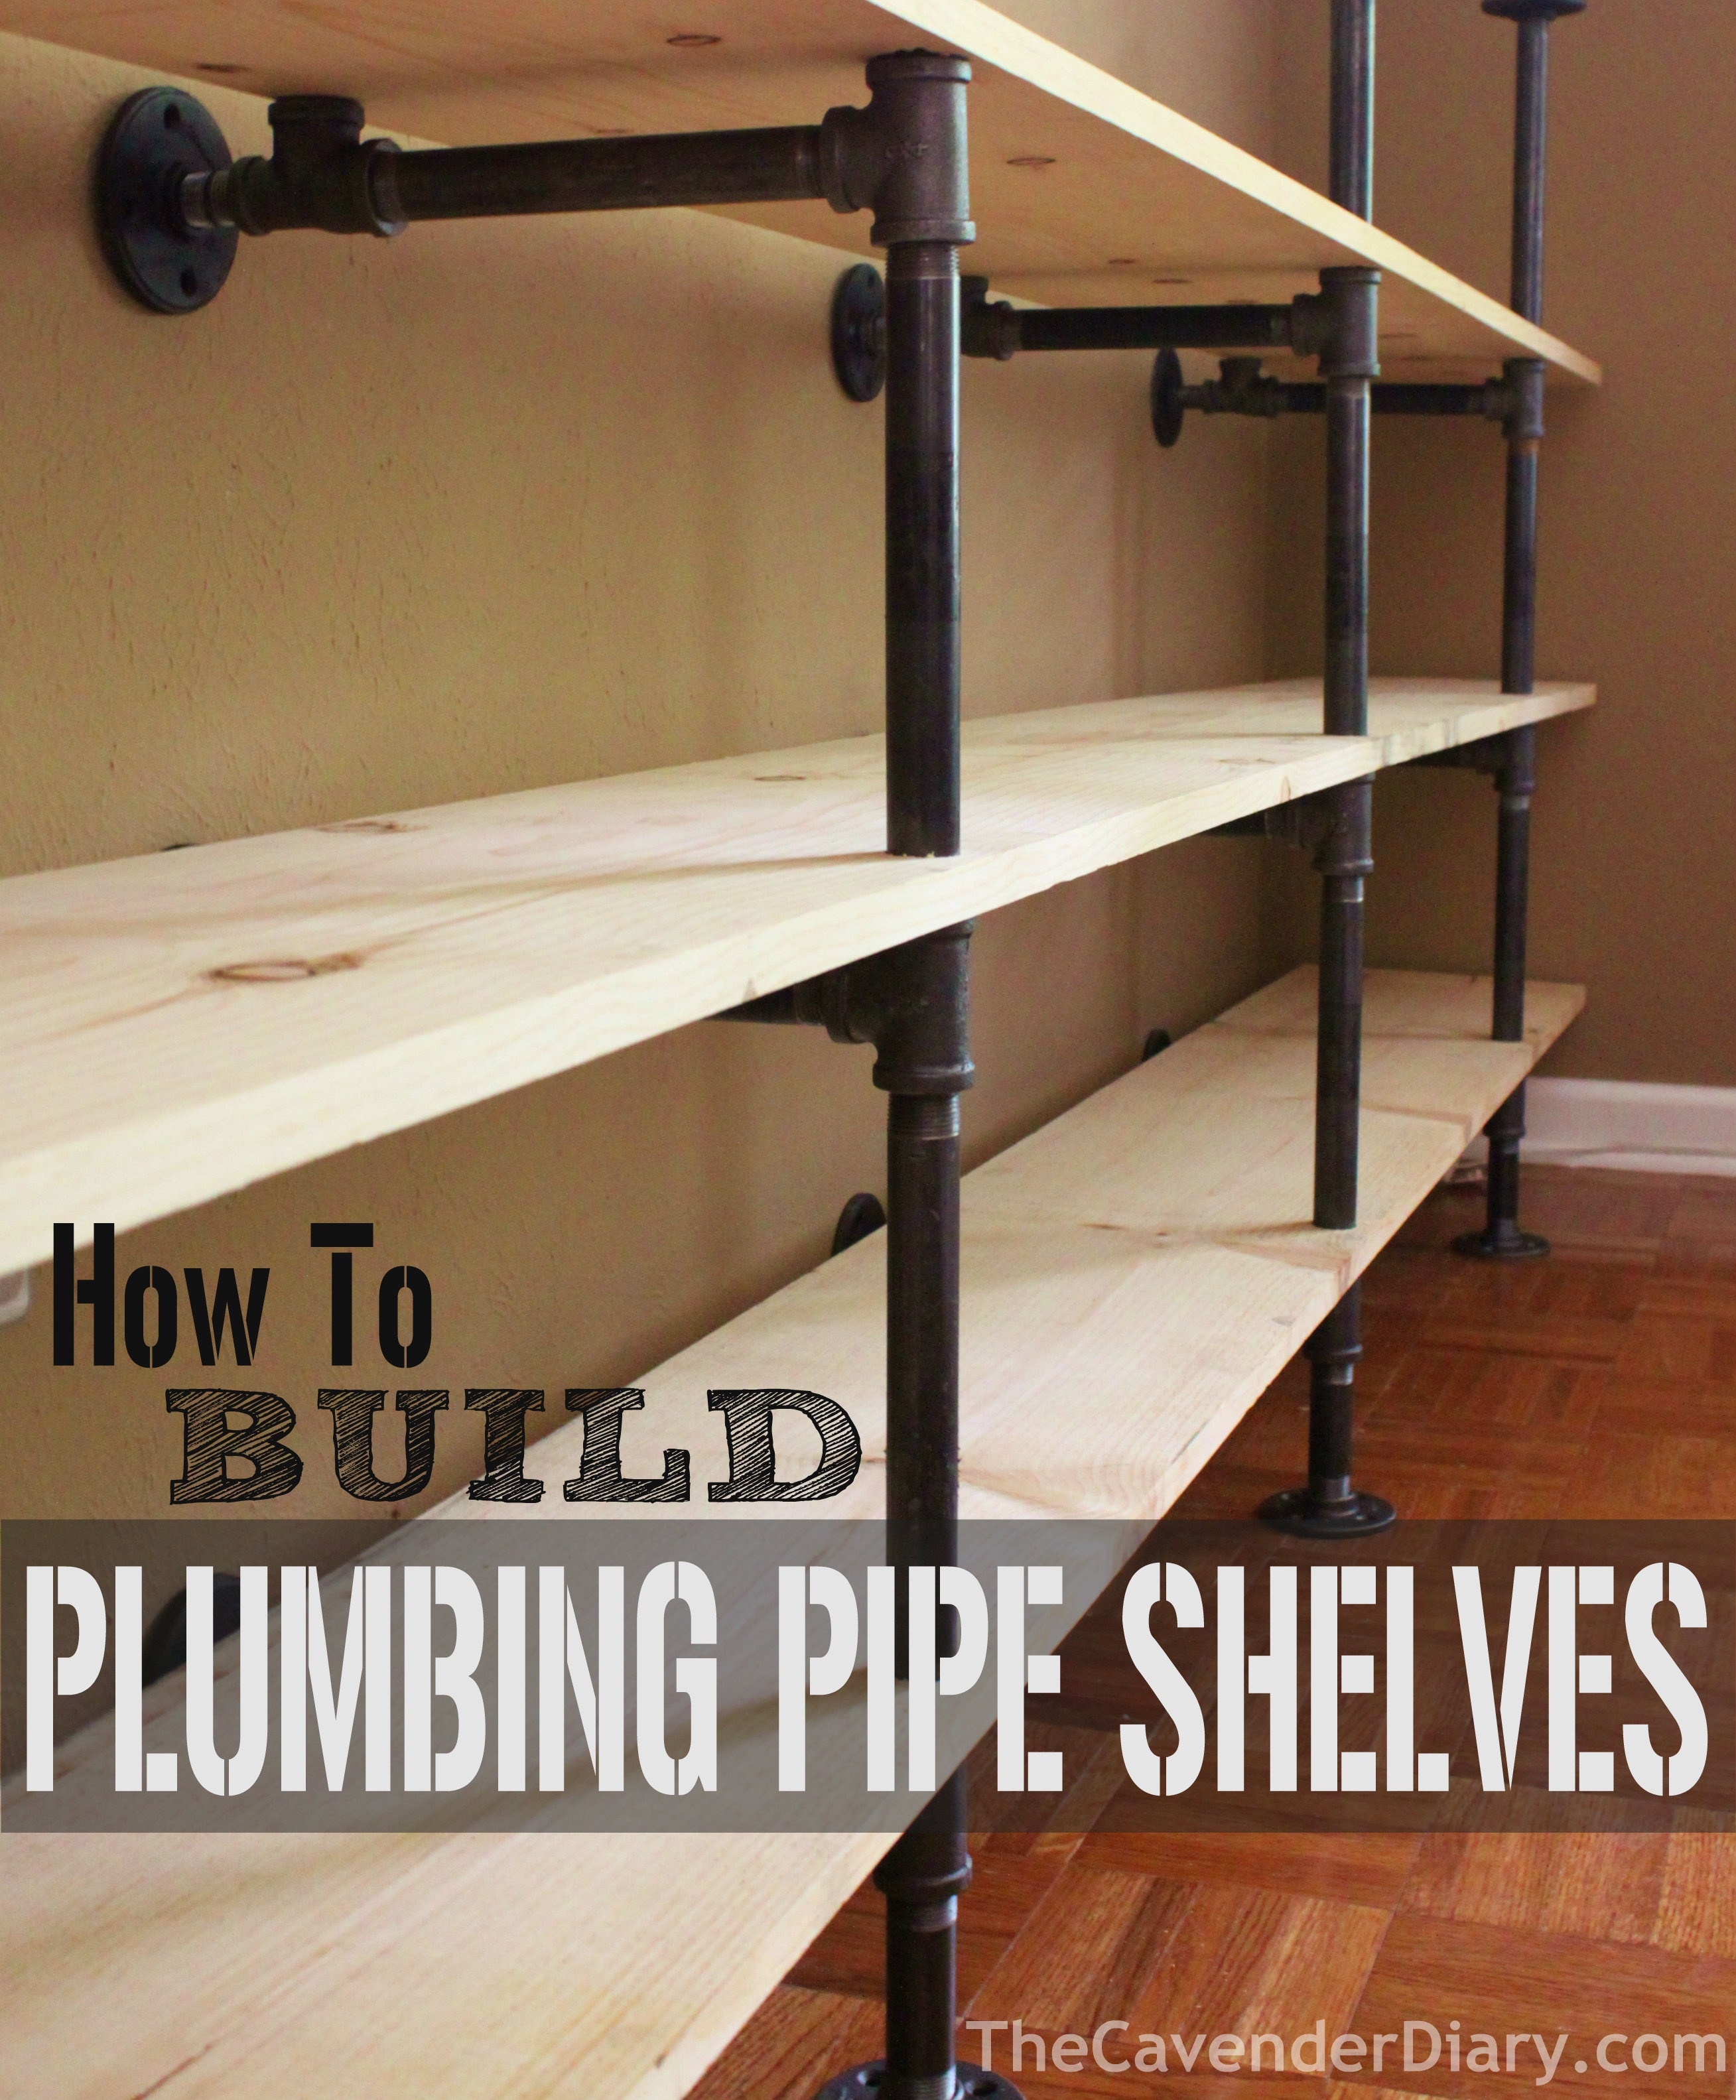 Captivating How To Build Plumbing Pipe Shelves From The Cavender Diary